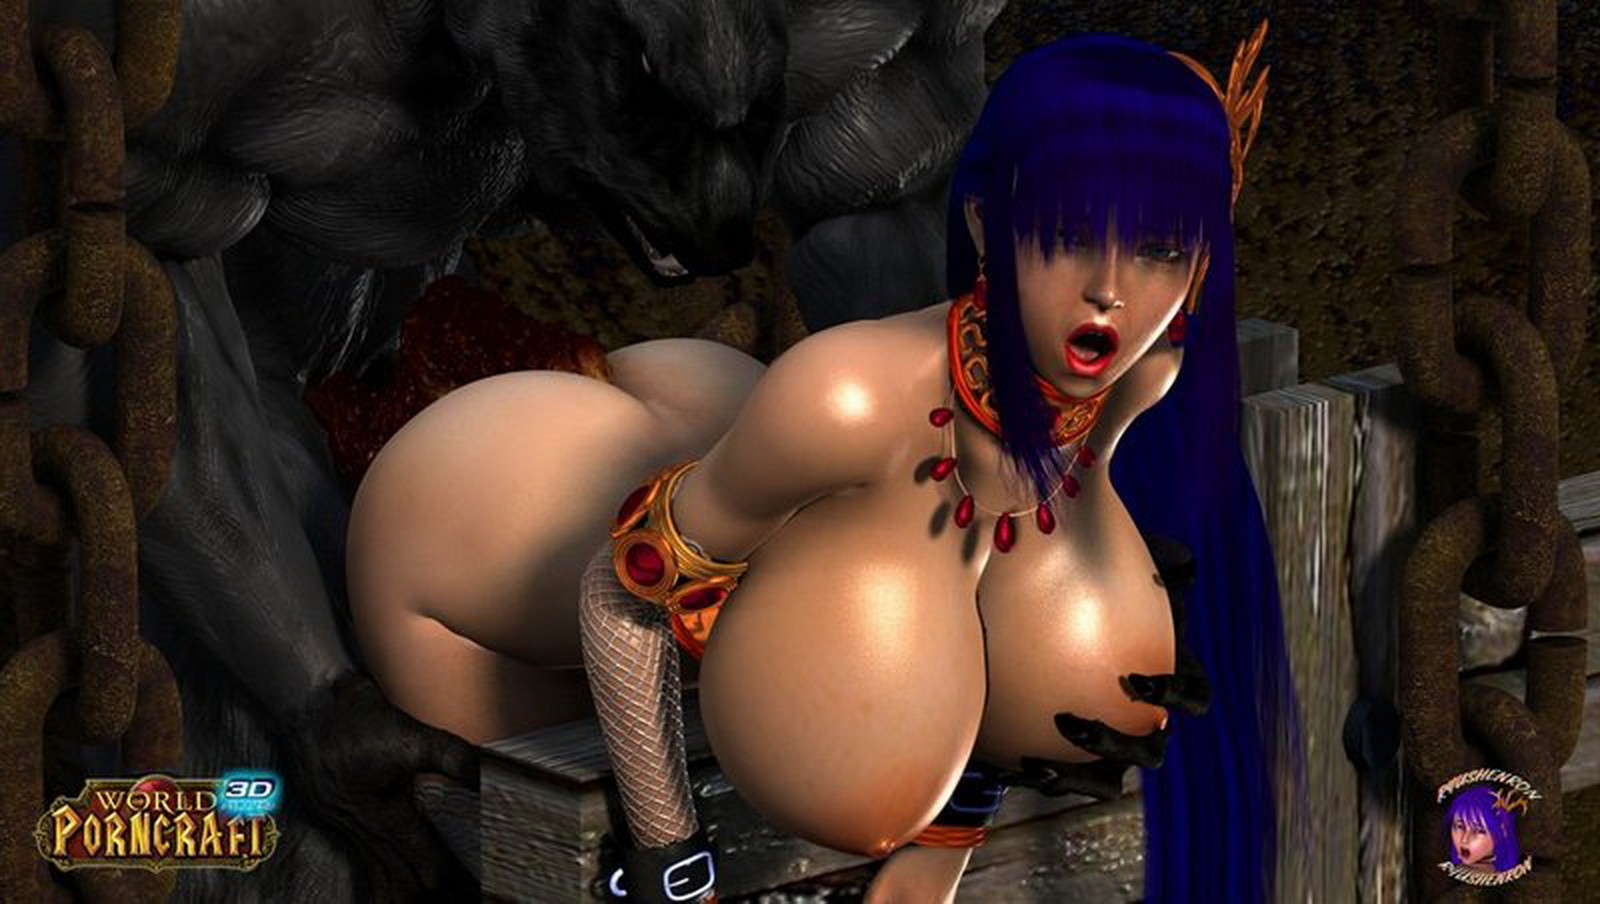 Monster fucks elf world of porncraft 3d sexy movies